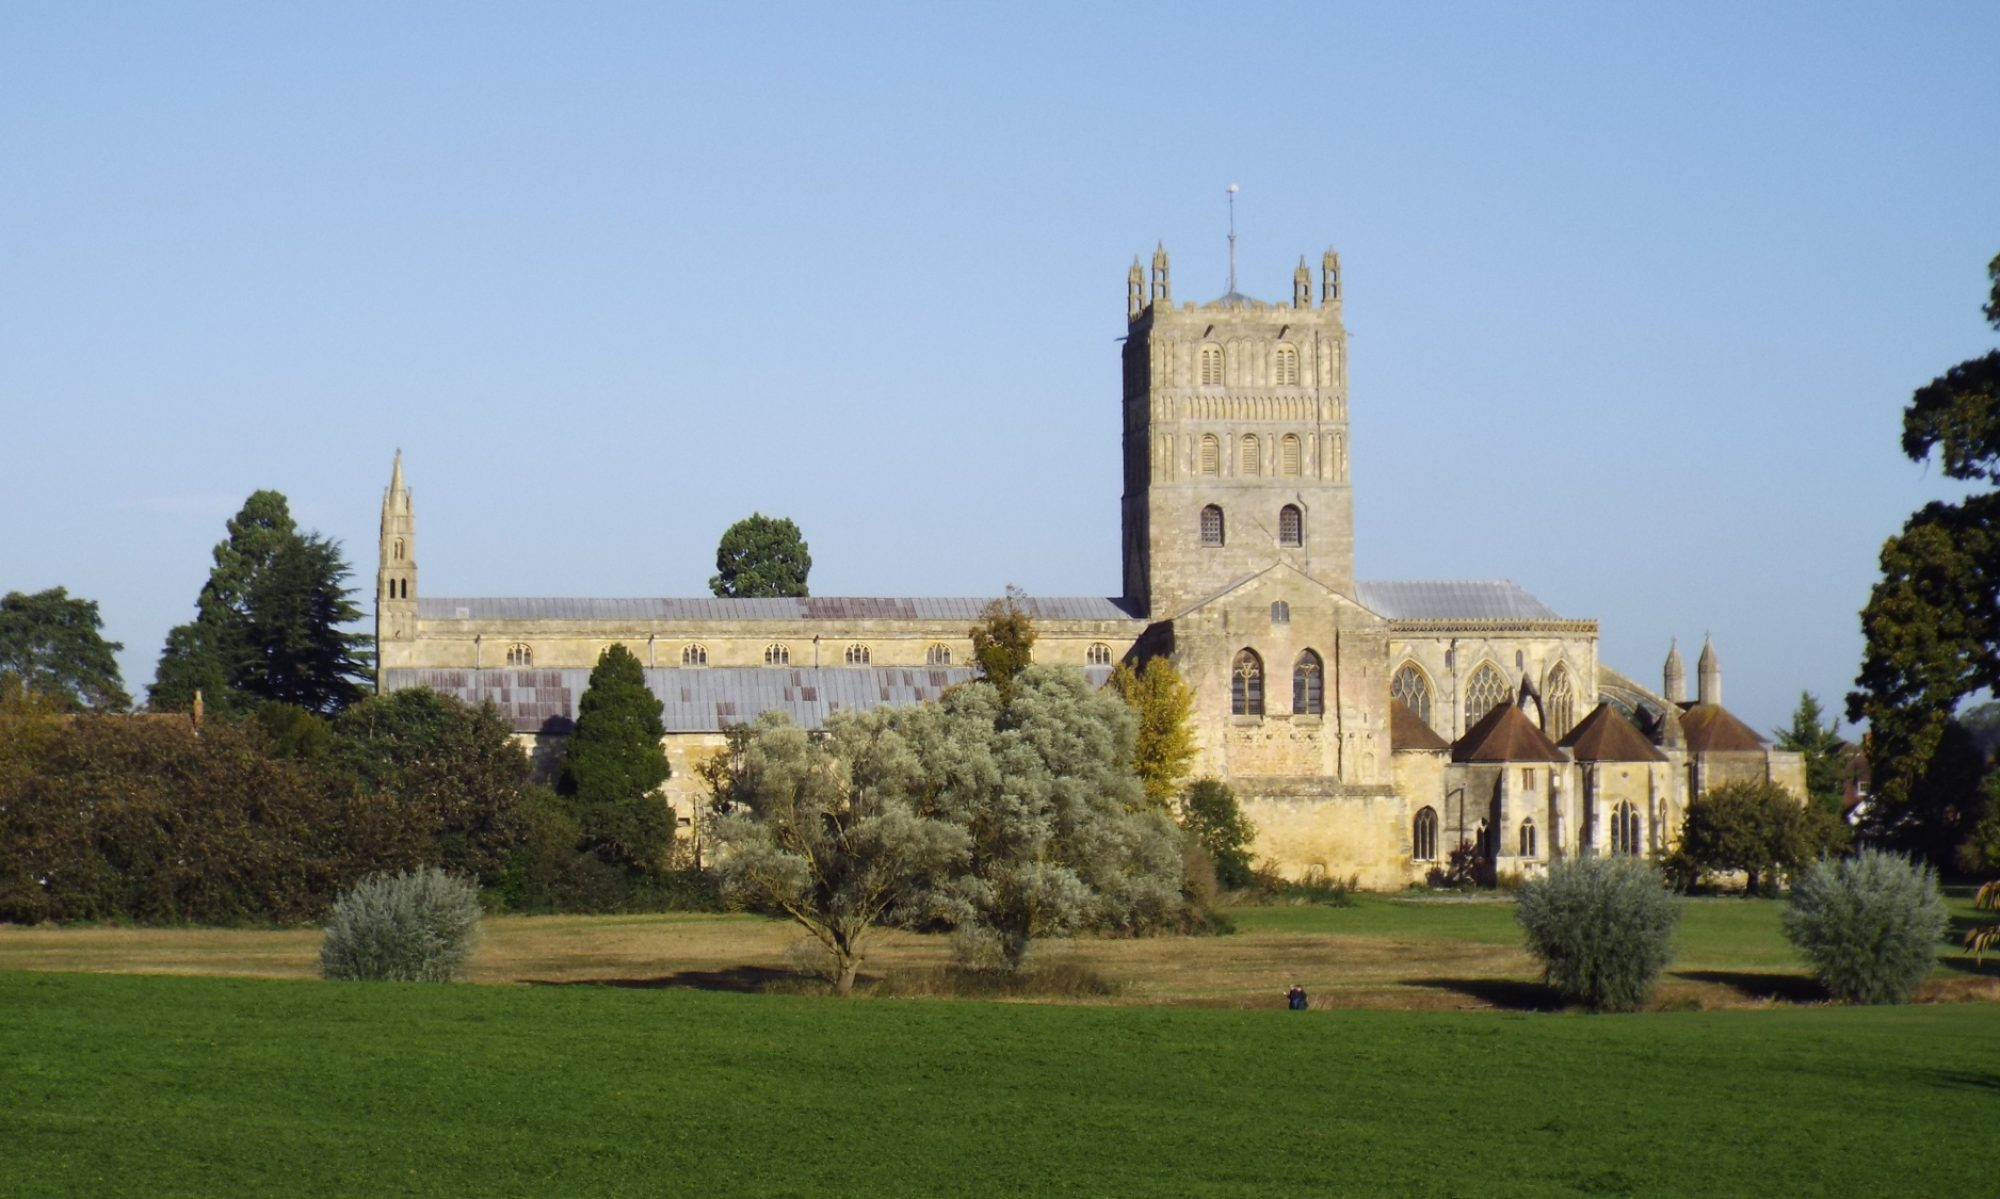 The Friends of Tewkesbury Abbey